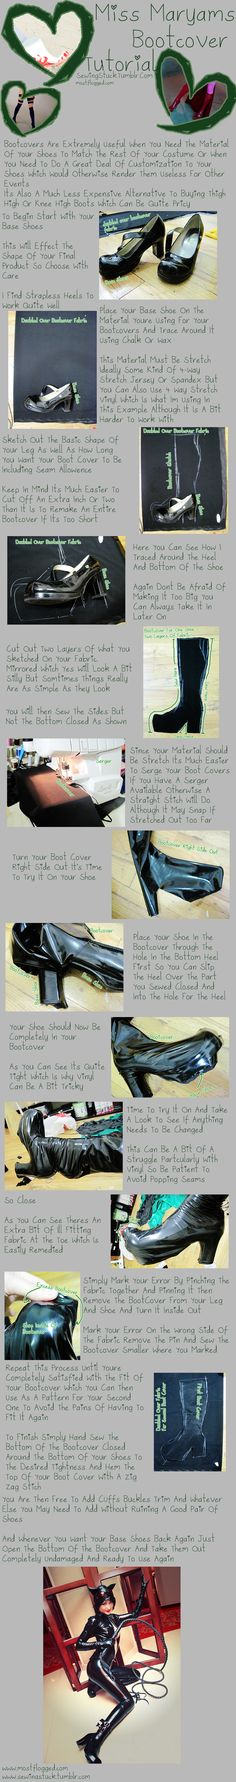 Sewingstuck - Bootcover Tutorial by Mostflogged.deviantart.com on @deviantART might use this for a friend's thief god tier cosplay